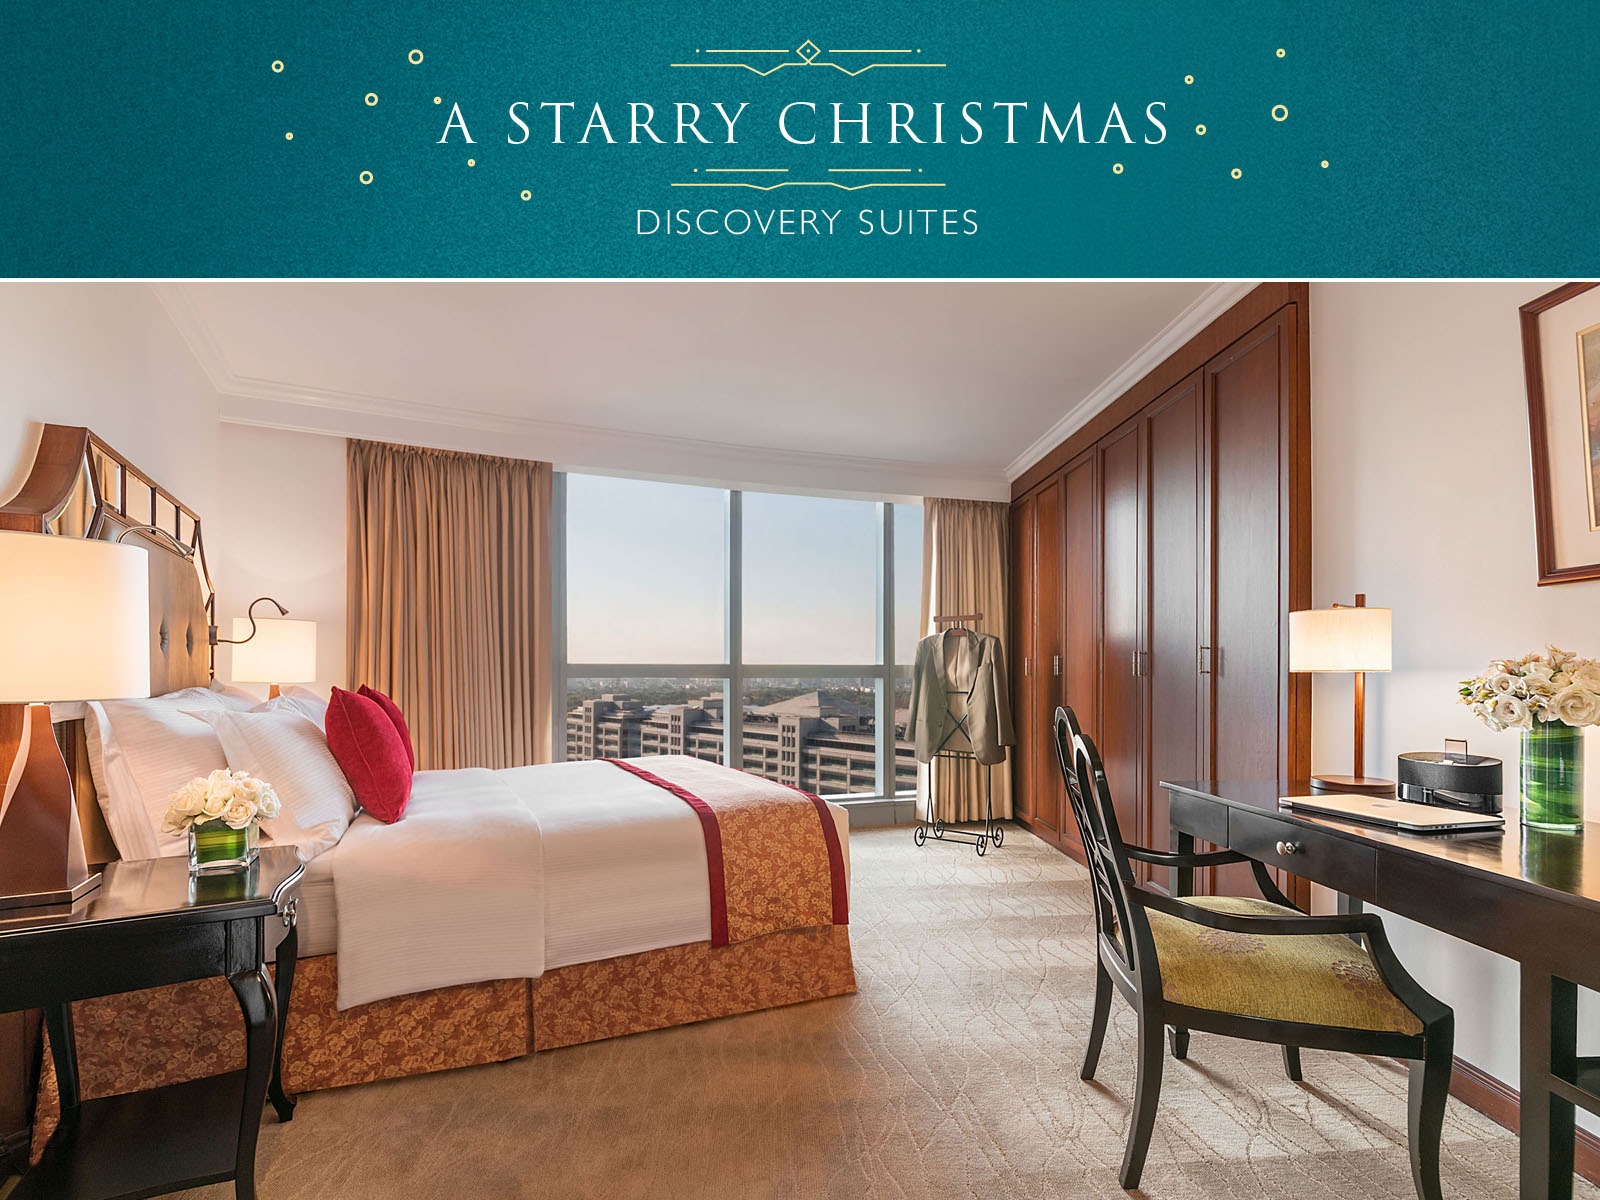 A Starry Christmas At Discovery Suites Ortigas Manila Dine Philippines